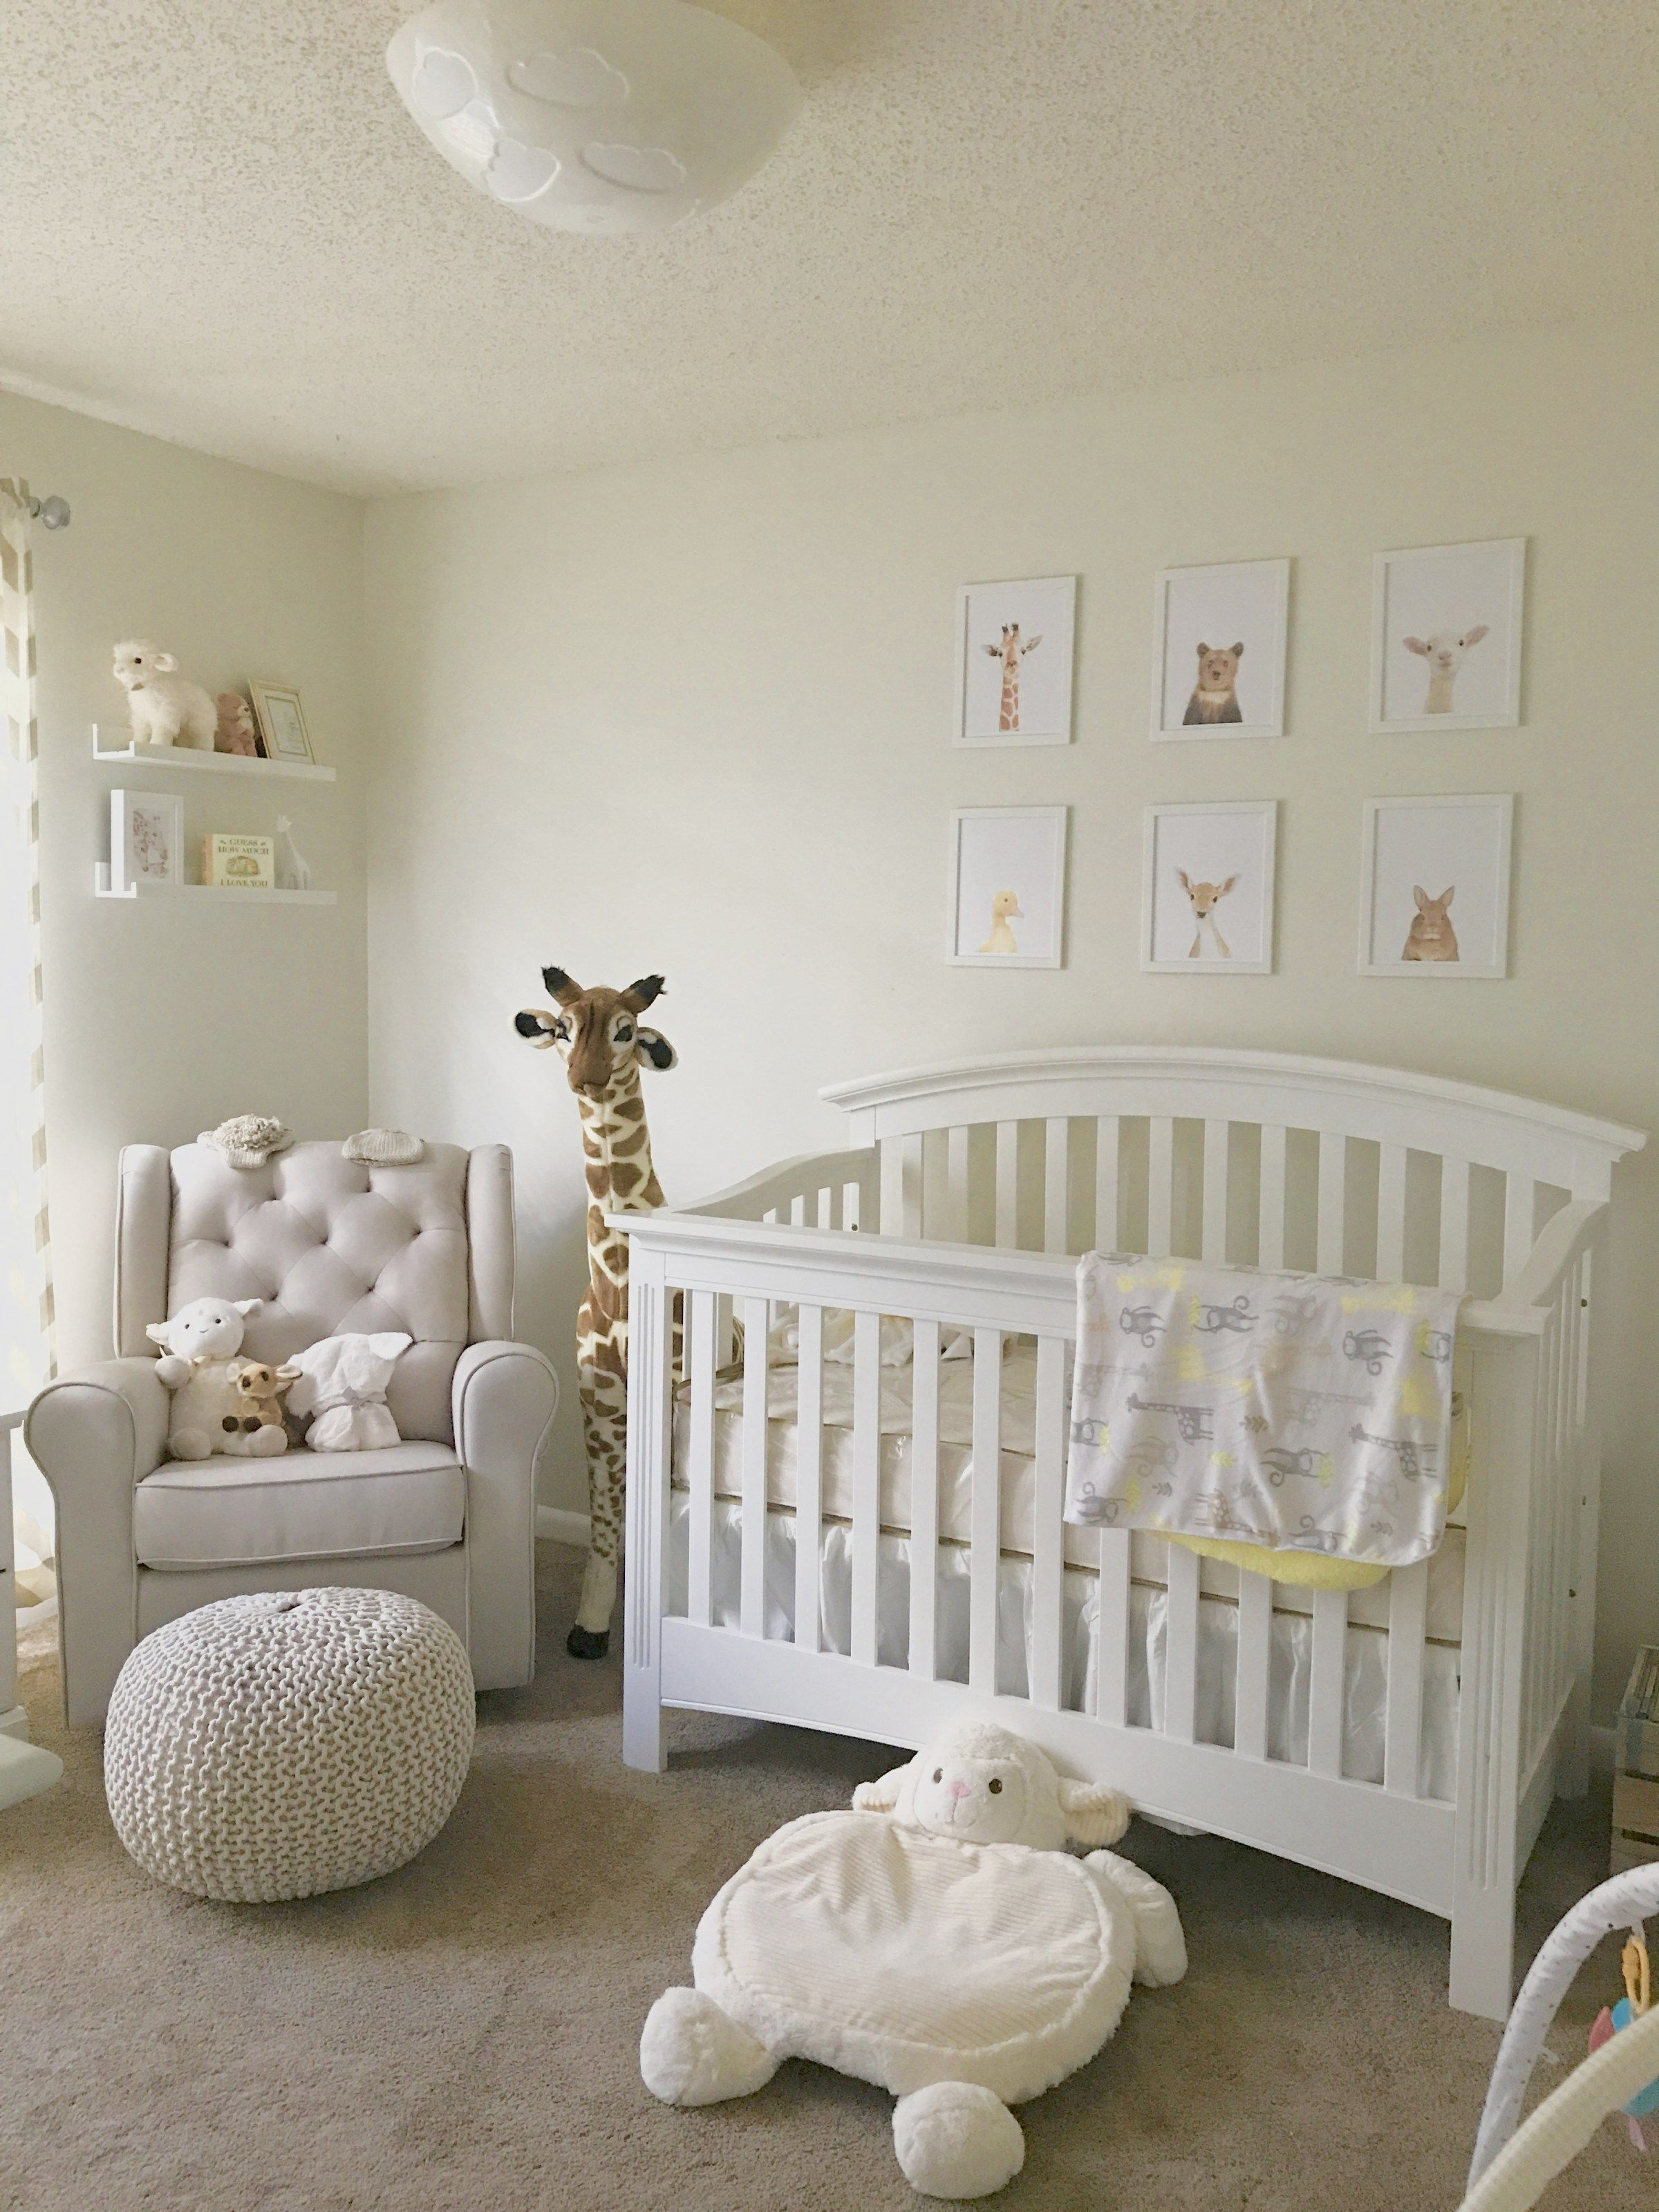 Amazing Nursery Decorating Ideas - Baby Room Design For Chic ...